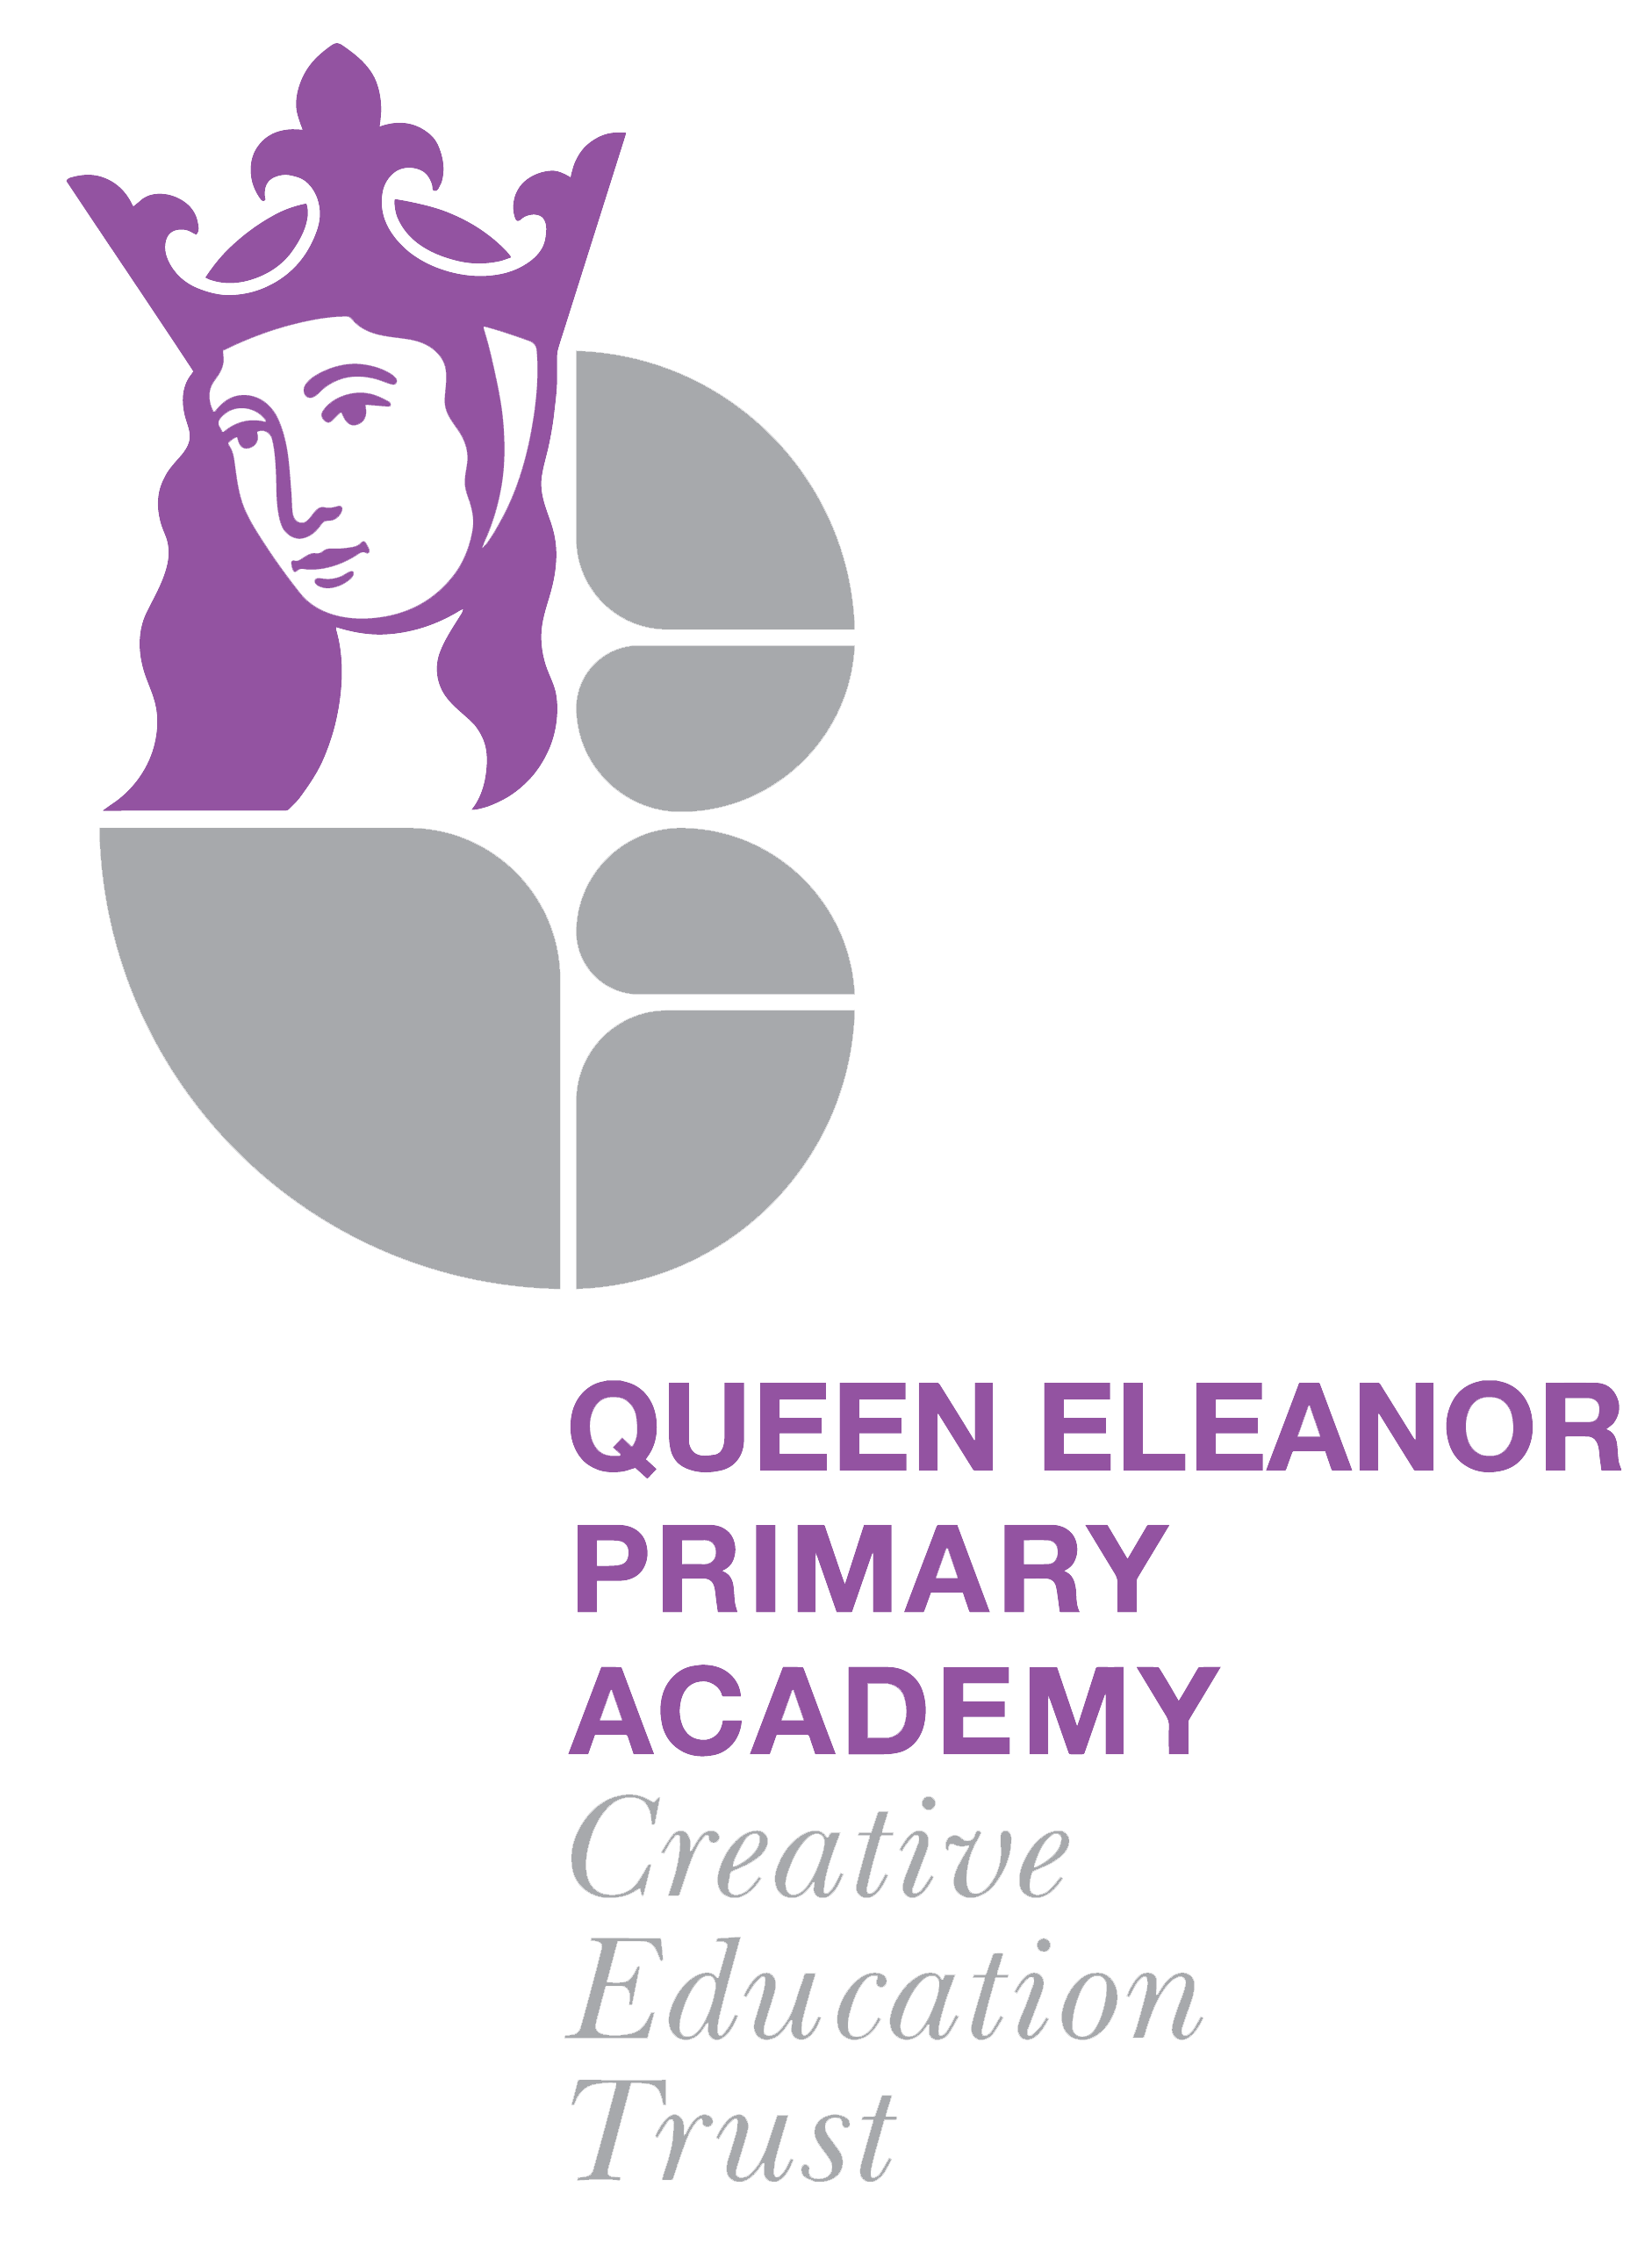 queen eleanor primary academy CET logo